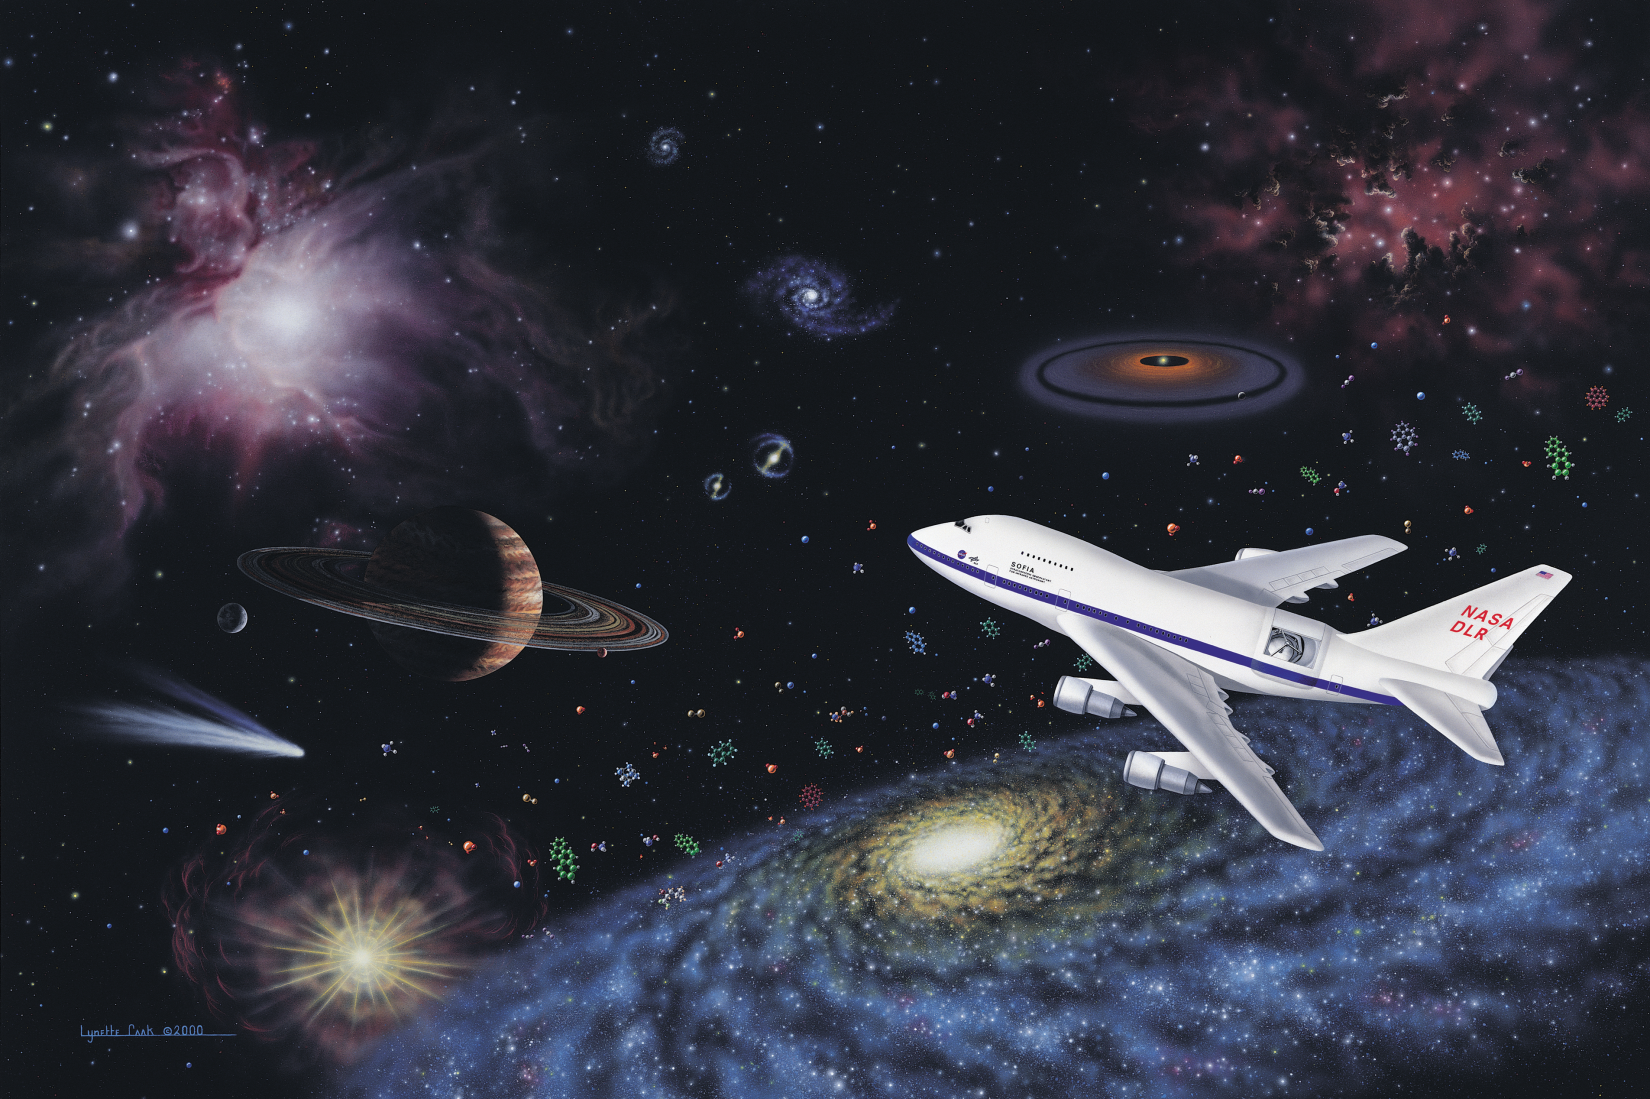 Impressionistic montage with SOFIA aircraft and cosmic phenomena it observes